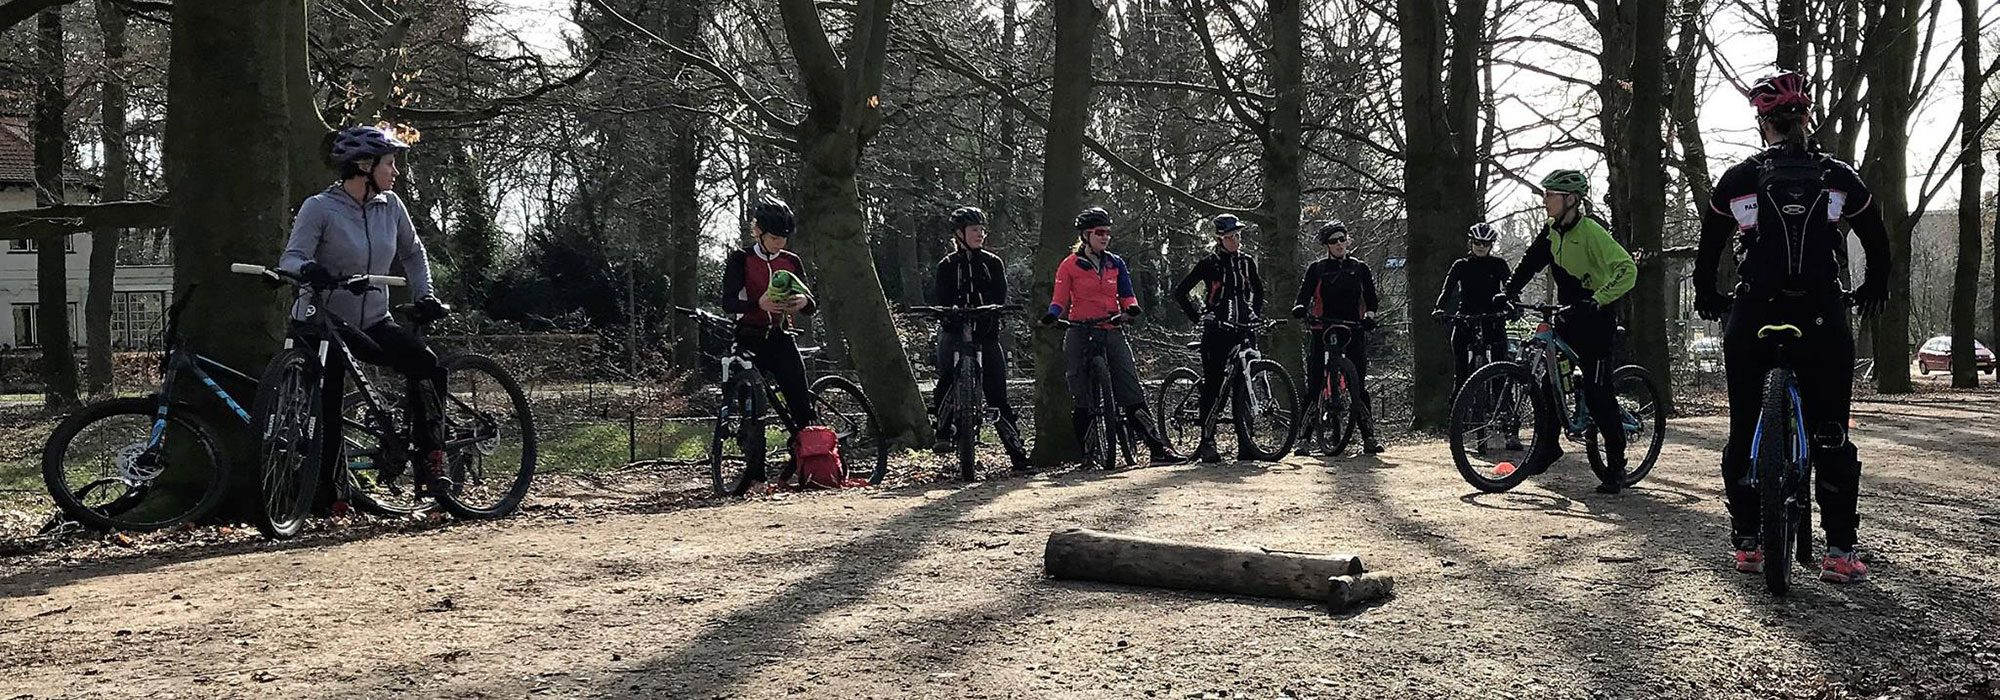 mtbclinic.nl mountainbike clinics women